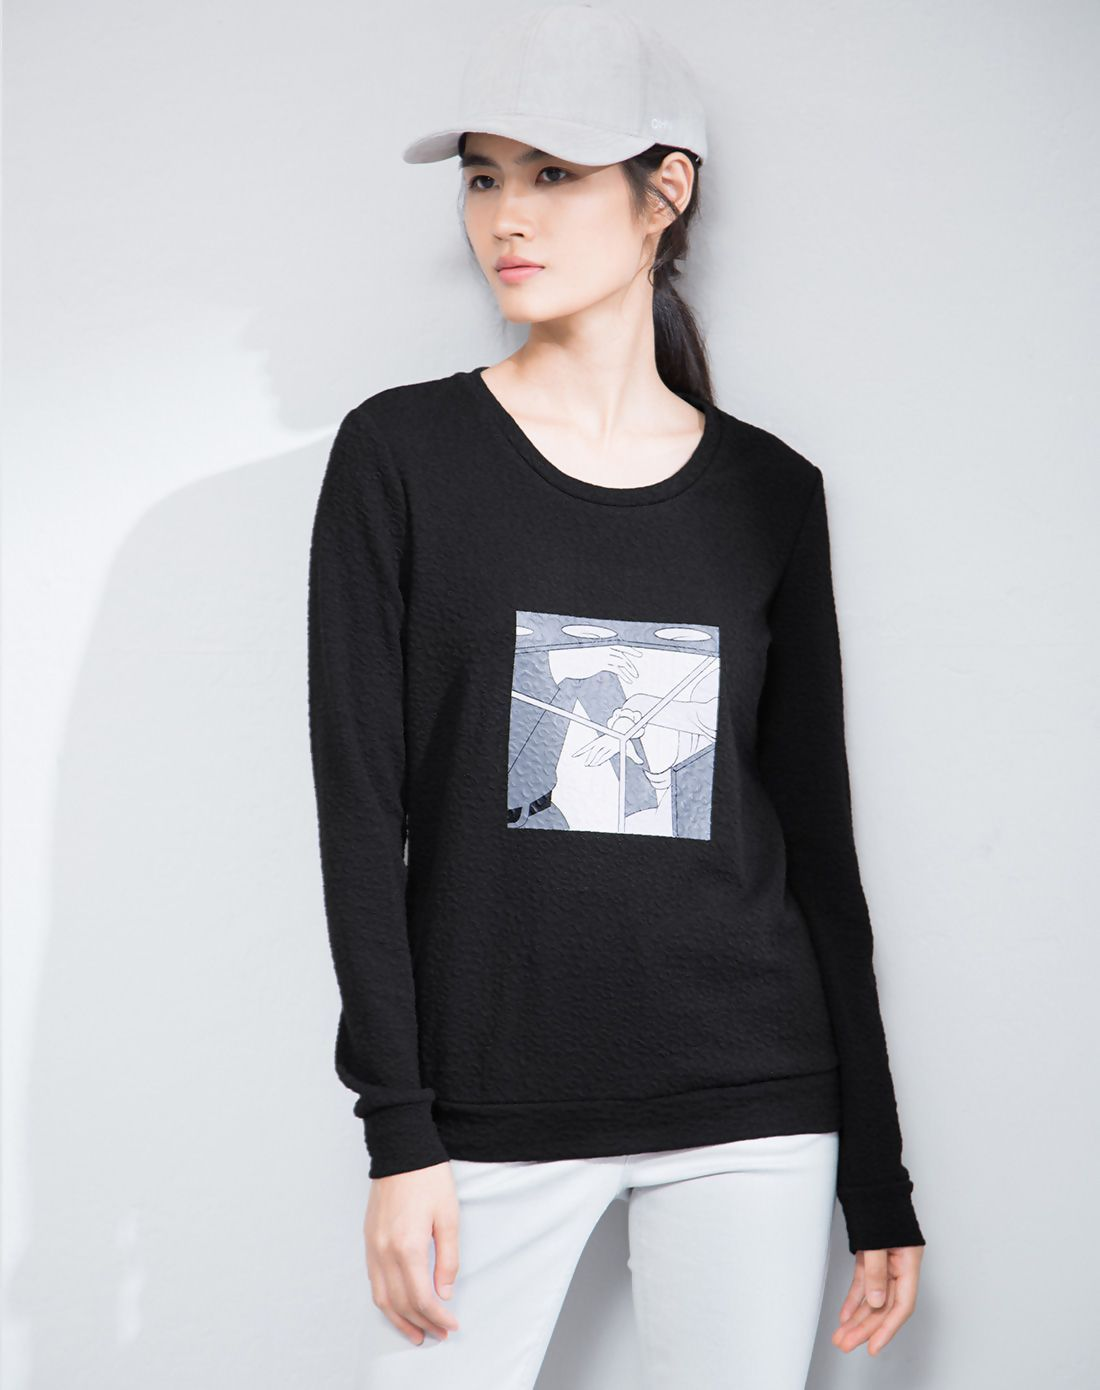 #VIPshop Black Round Neck Pullover Long Sleeve Loose Women's T-Shirt ❤️ Get more outfit ideas and style inspiration from fashion designers at VIP.com.